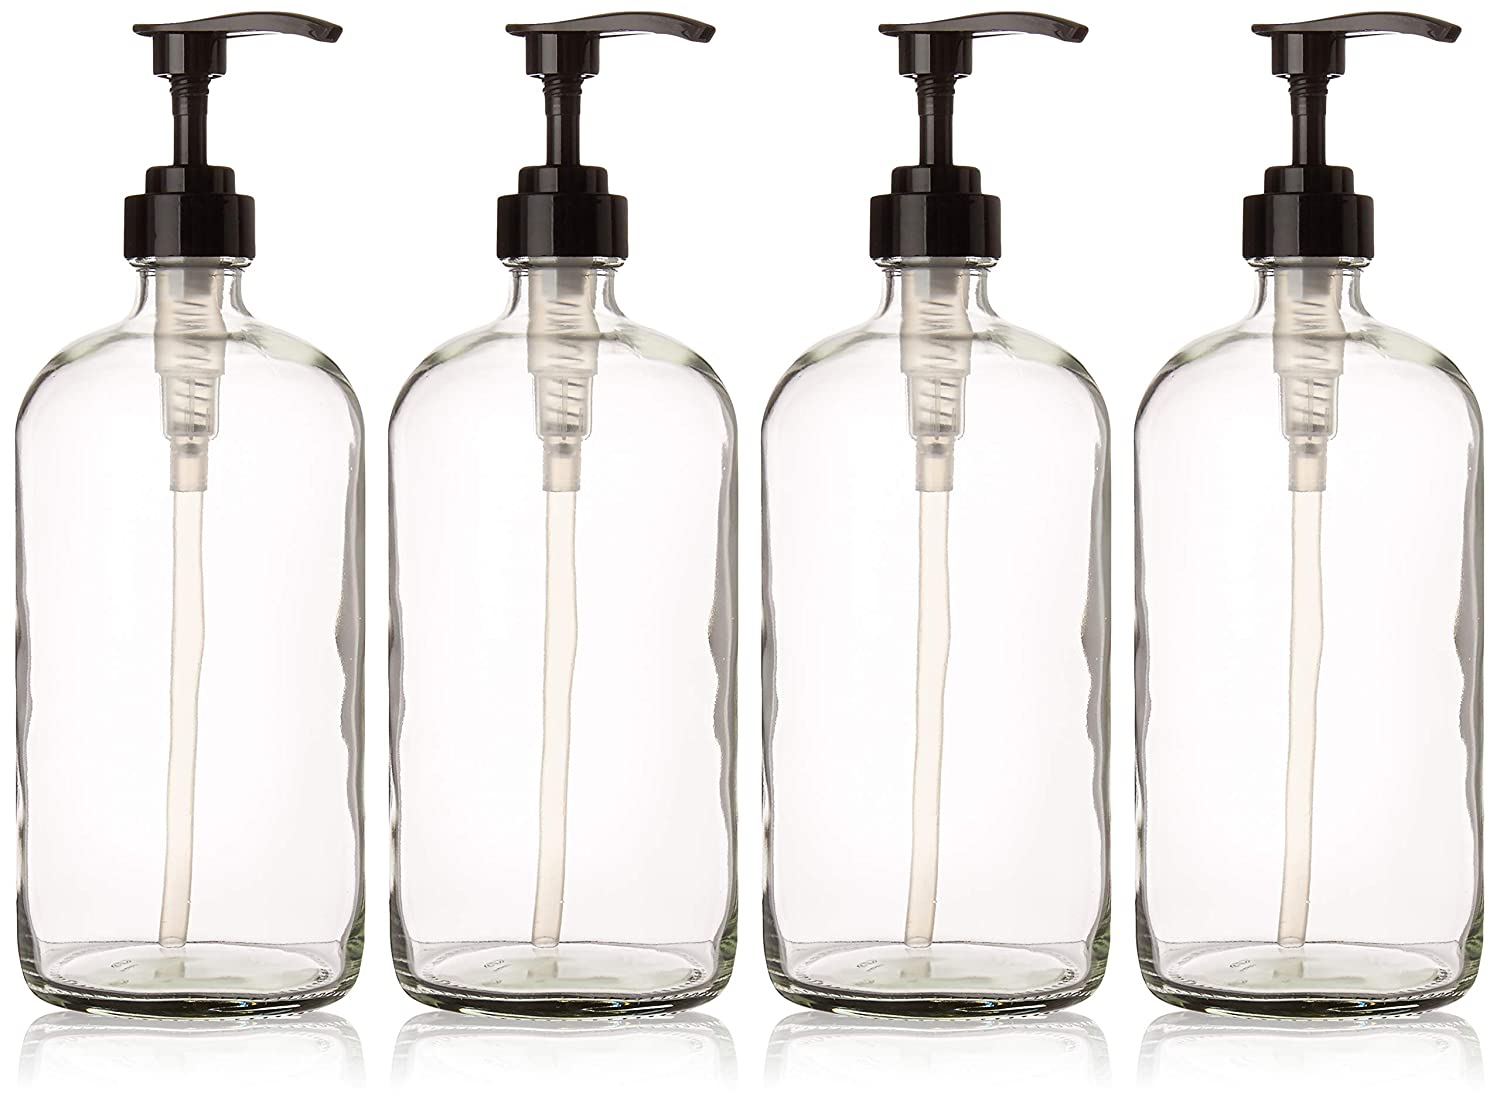 32 Ounce Large Clear Glass Boston Round Bottles with Black Pumps. Great for Lotions, Soaps, Oils, Sauces and DIY Laundry Detergent – Food Safe and Medical Grade – by kitchentoolz Pack of 4